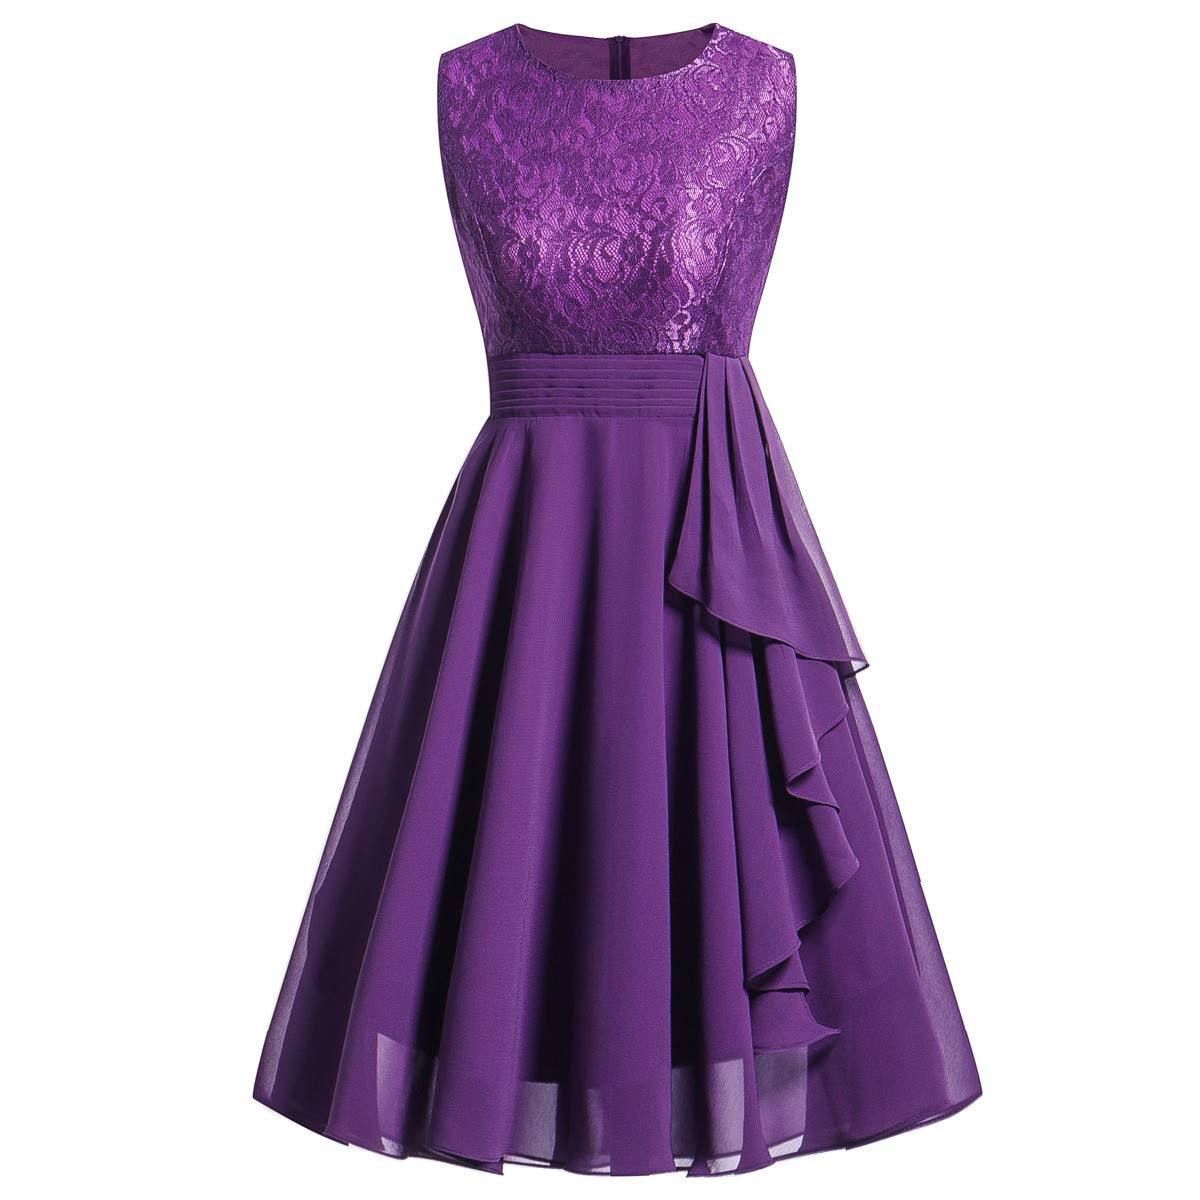 Hot Sale Bridesmaid Lace Dress DEATU Women Sleeveless/Long Sleeve Formal Ladies Wedding Bridesmaid Lace Long Dress(D-Purple ,XL)